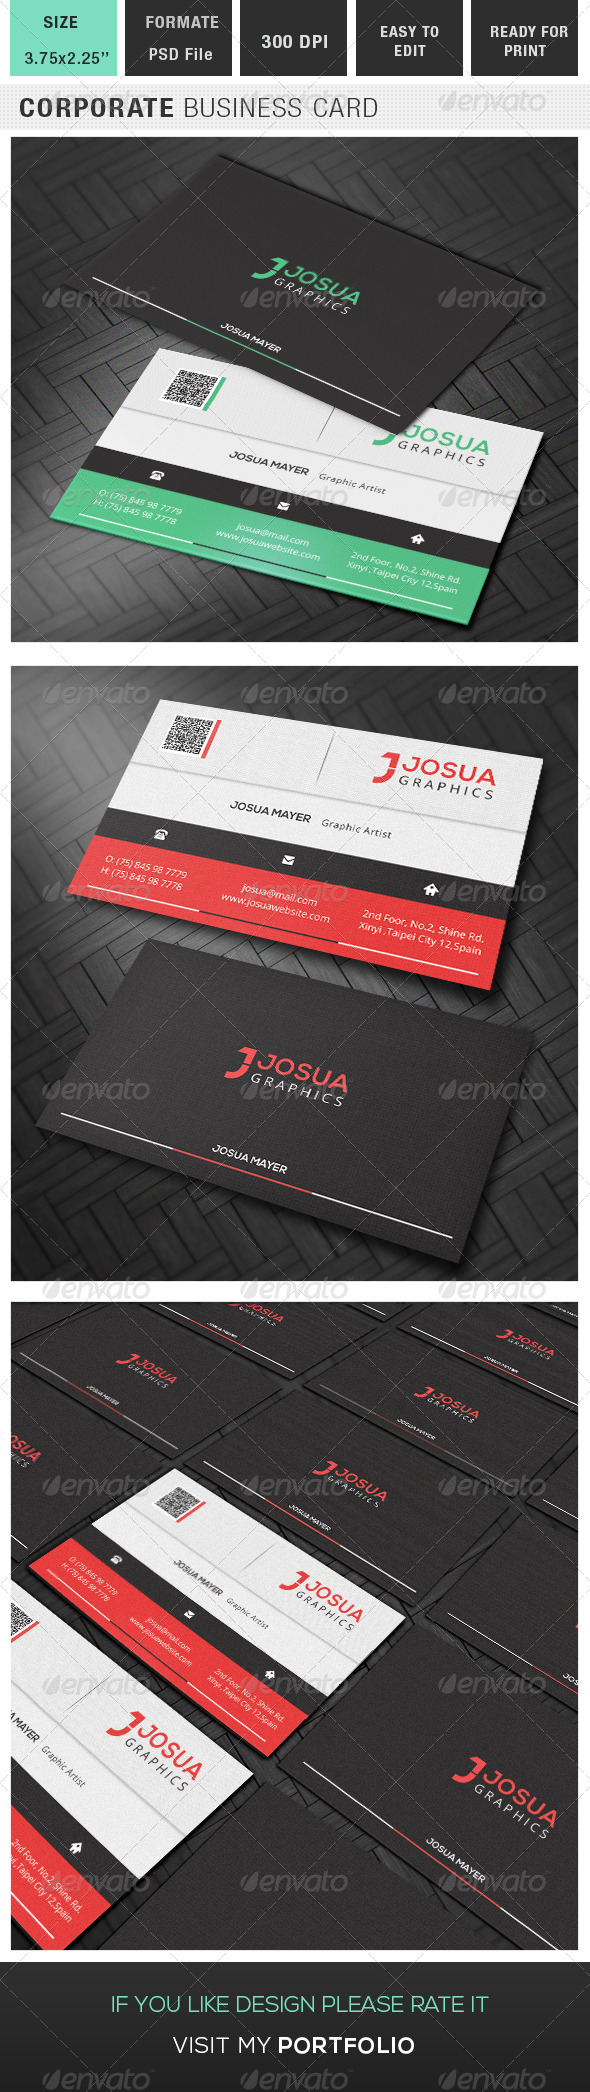 GraphicRiver Corporate Business Card 8238974